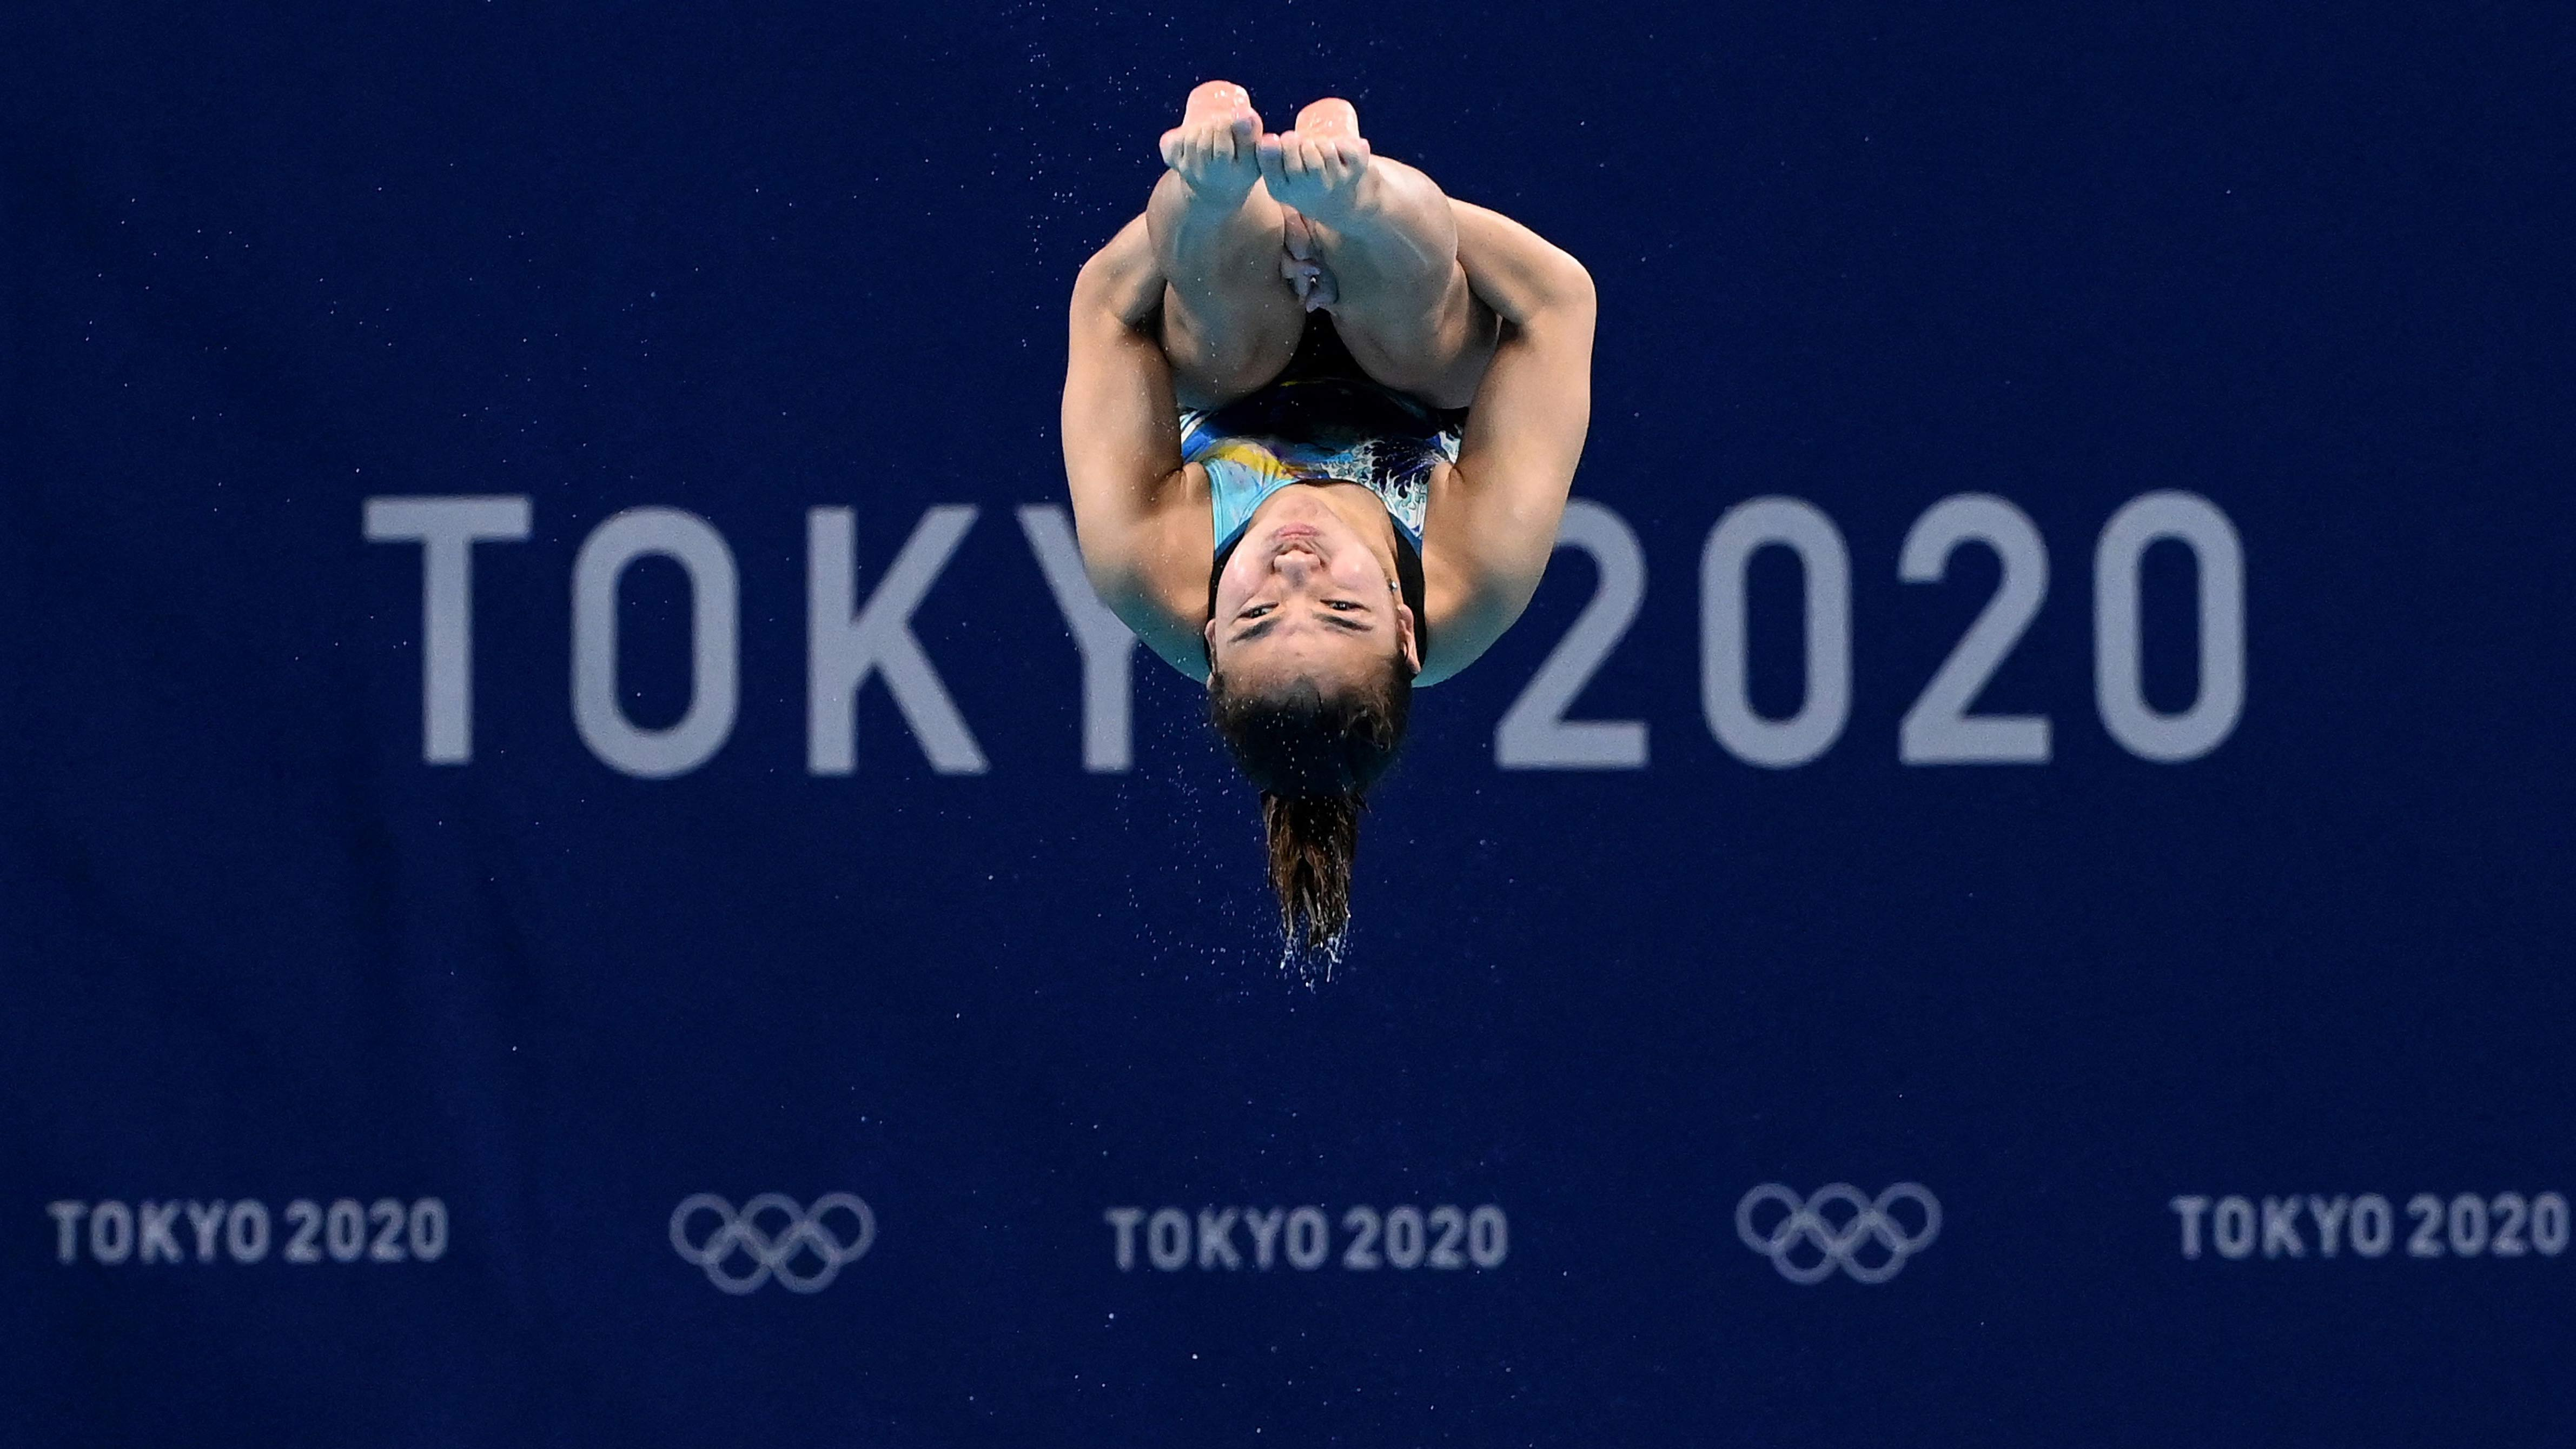 Malaysia's Sabri Nur Dhabitah competes in the 3m springboard diving final event on August 1.